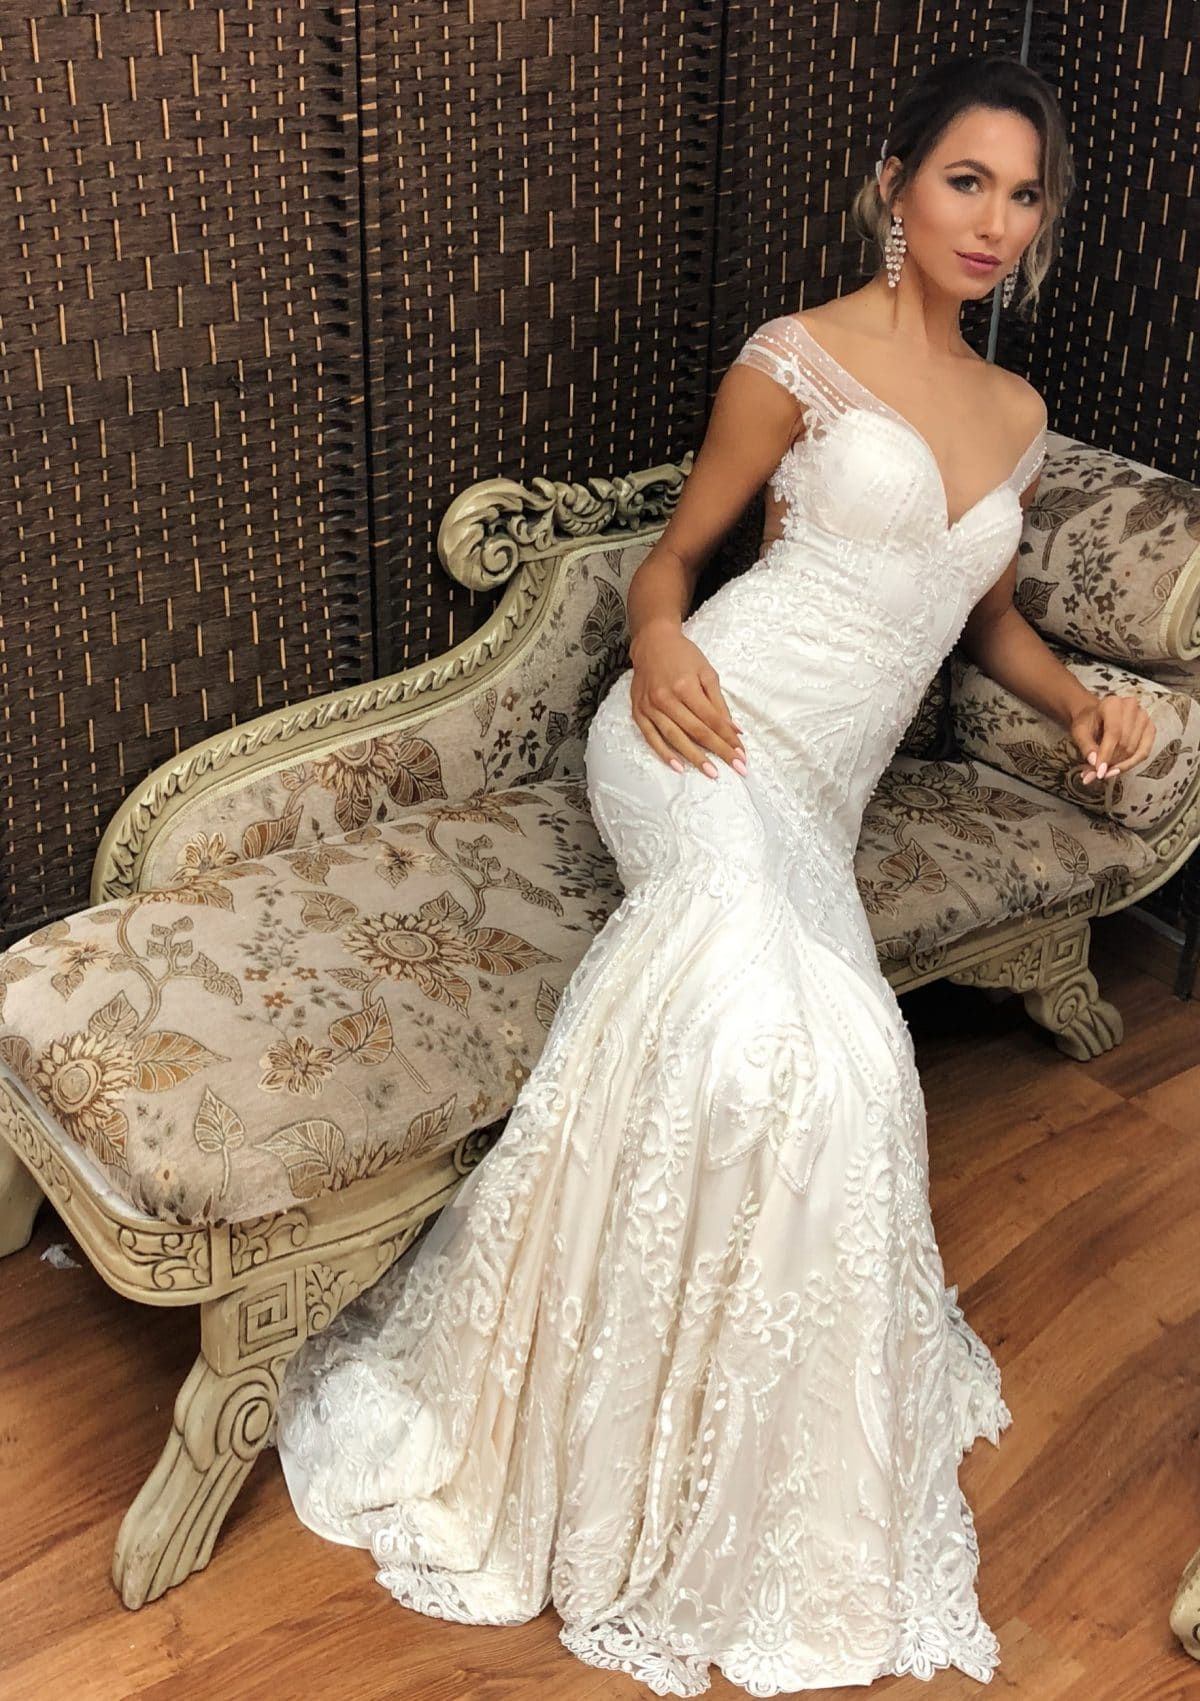 Recent Posts: Haute Couture Wedding Dress Sitting At Reisefeber.org